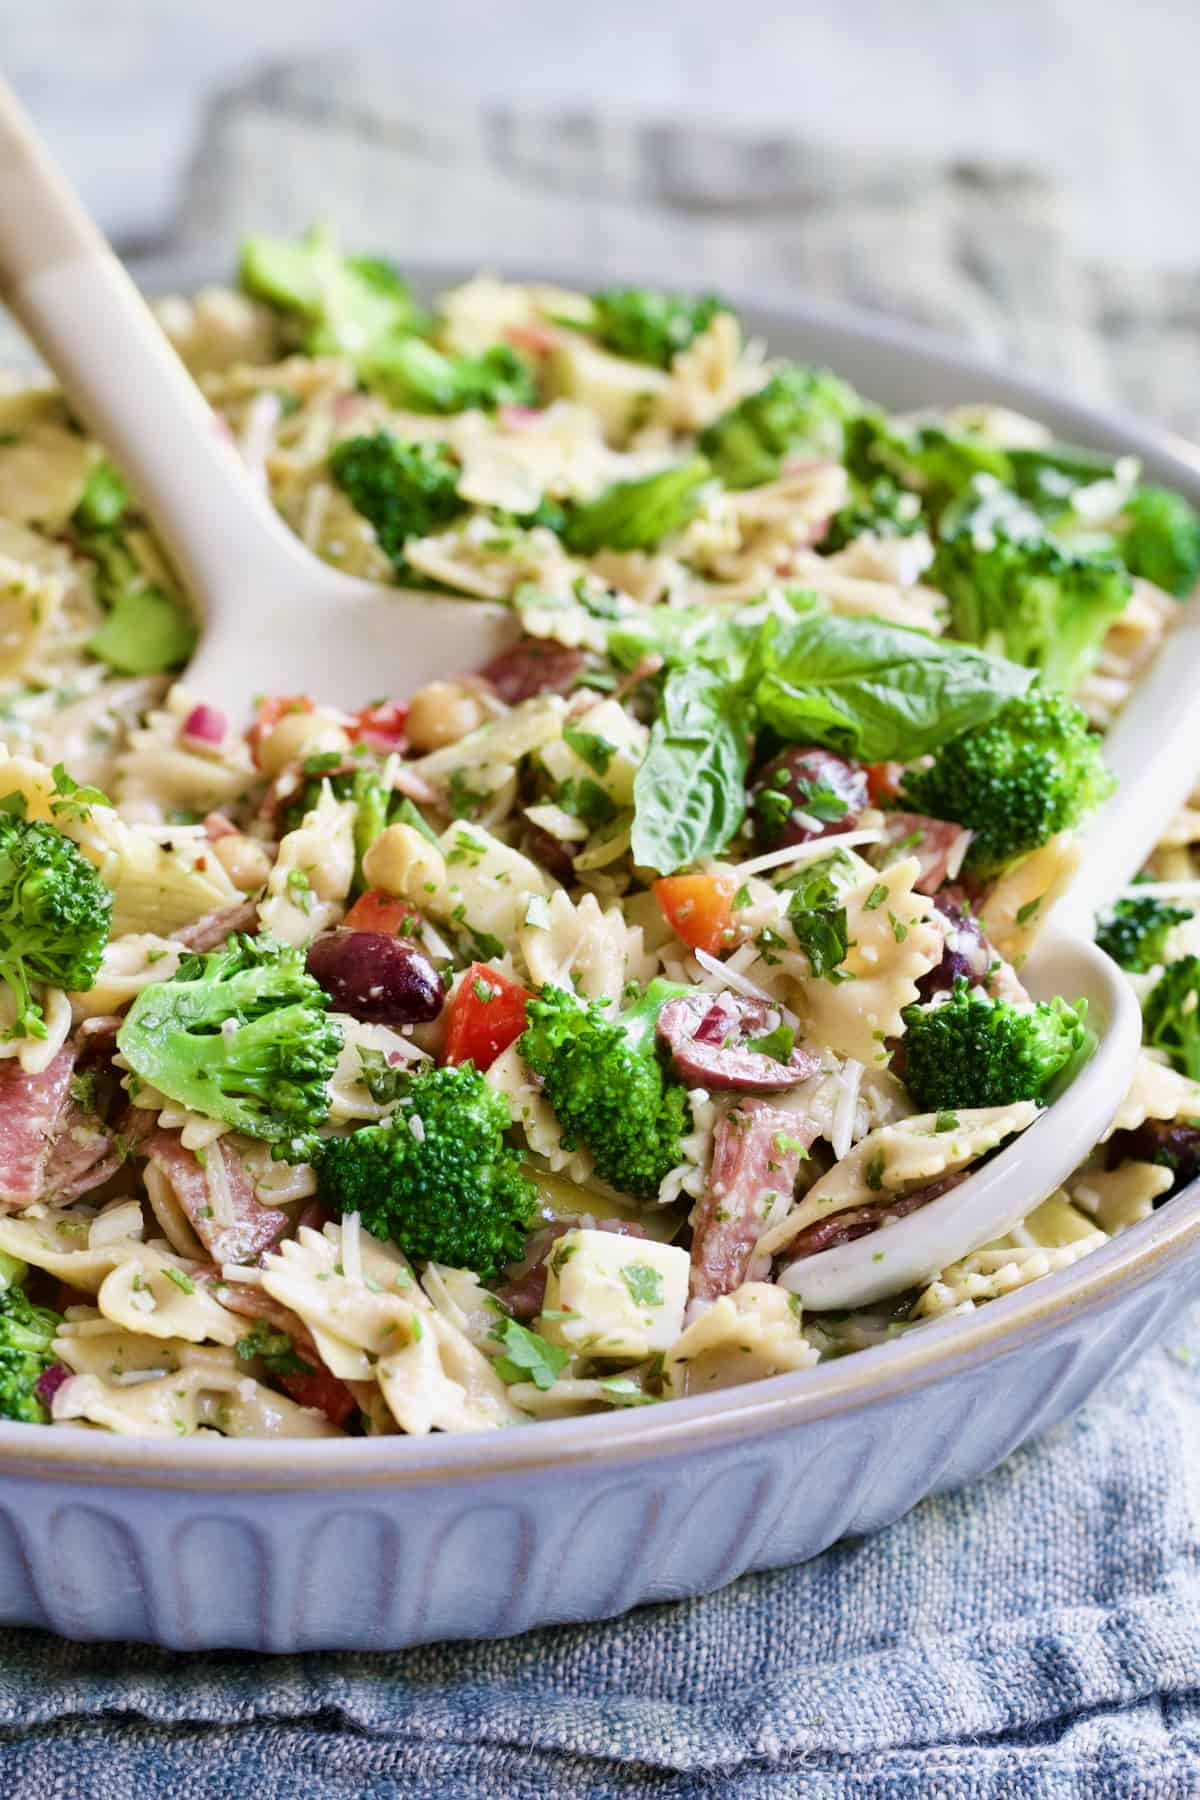 Close-up of Antipasto Pasta Broccoli Salad with Parmesan Herb Vinaigrette with serving utensils in gray bowl.